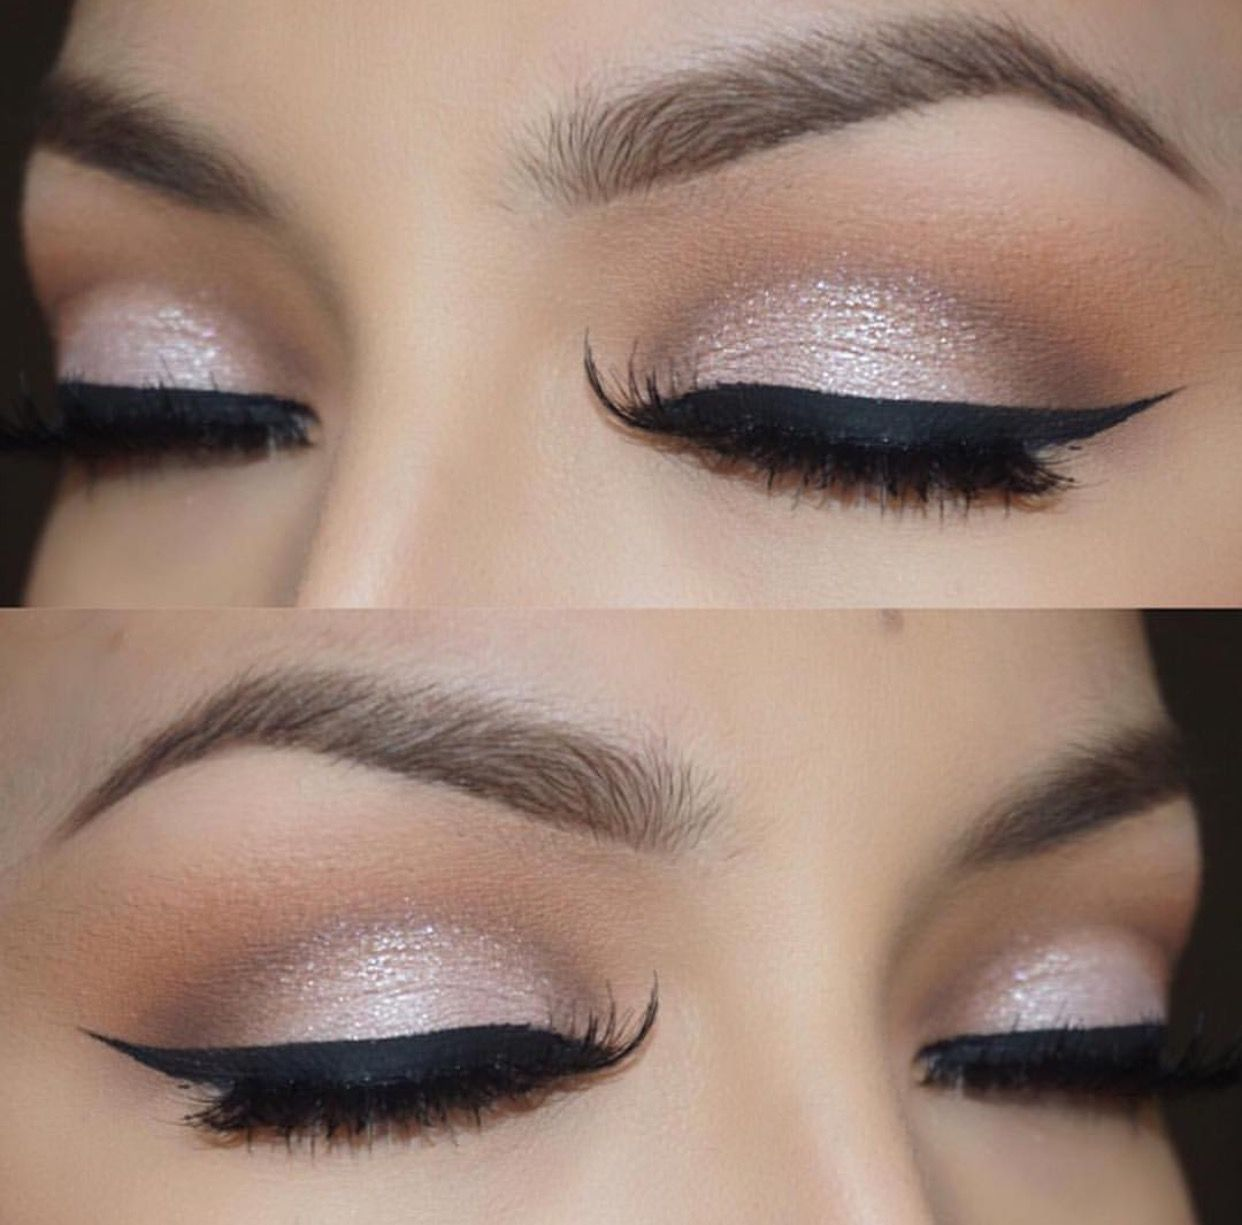 Pin by Ives Hovanessian on Makeup Bridal eye makeup, Eye